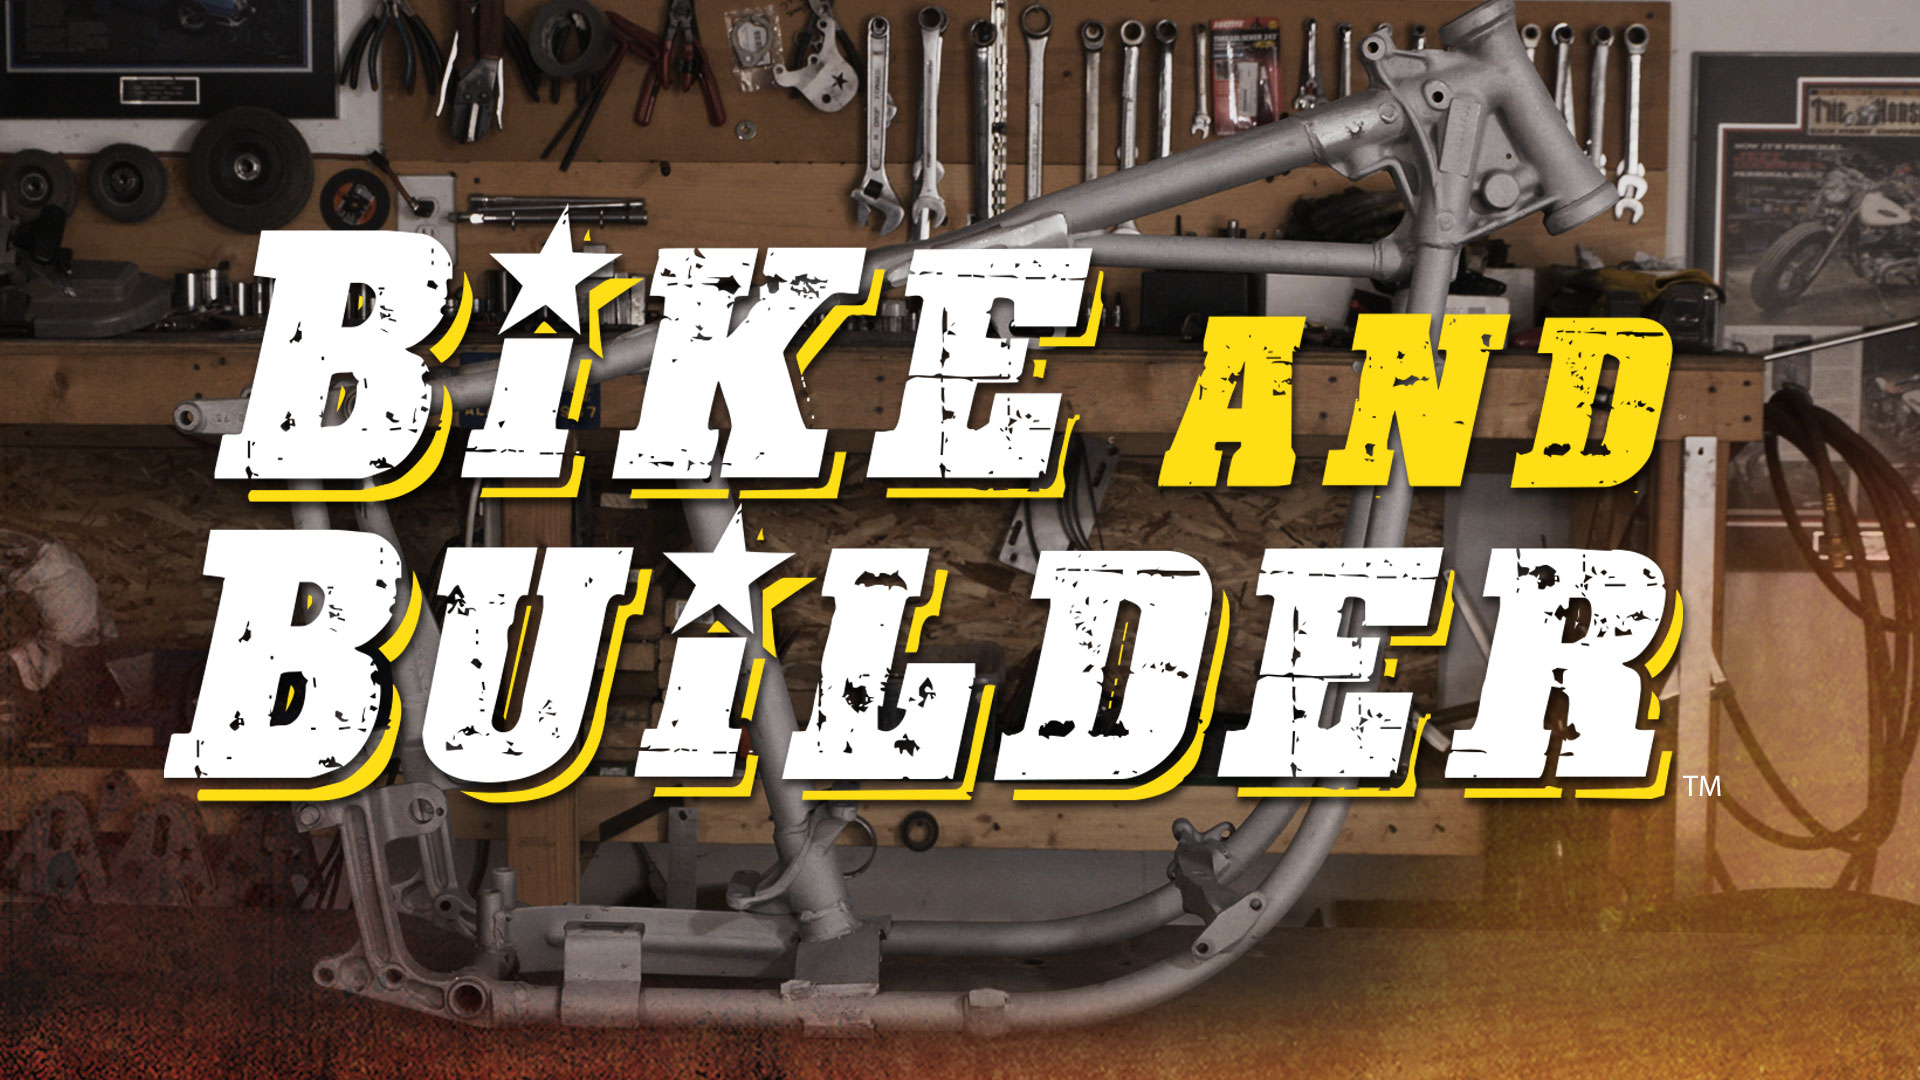 Bike and Builder